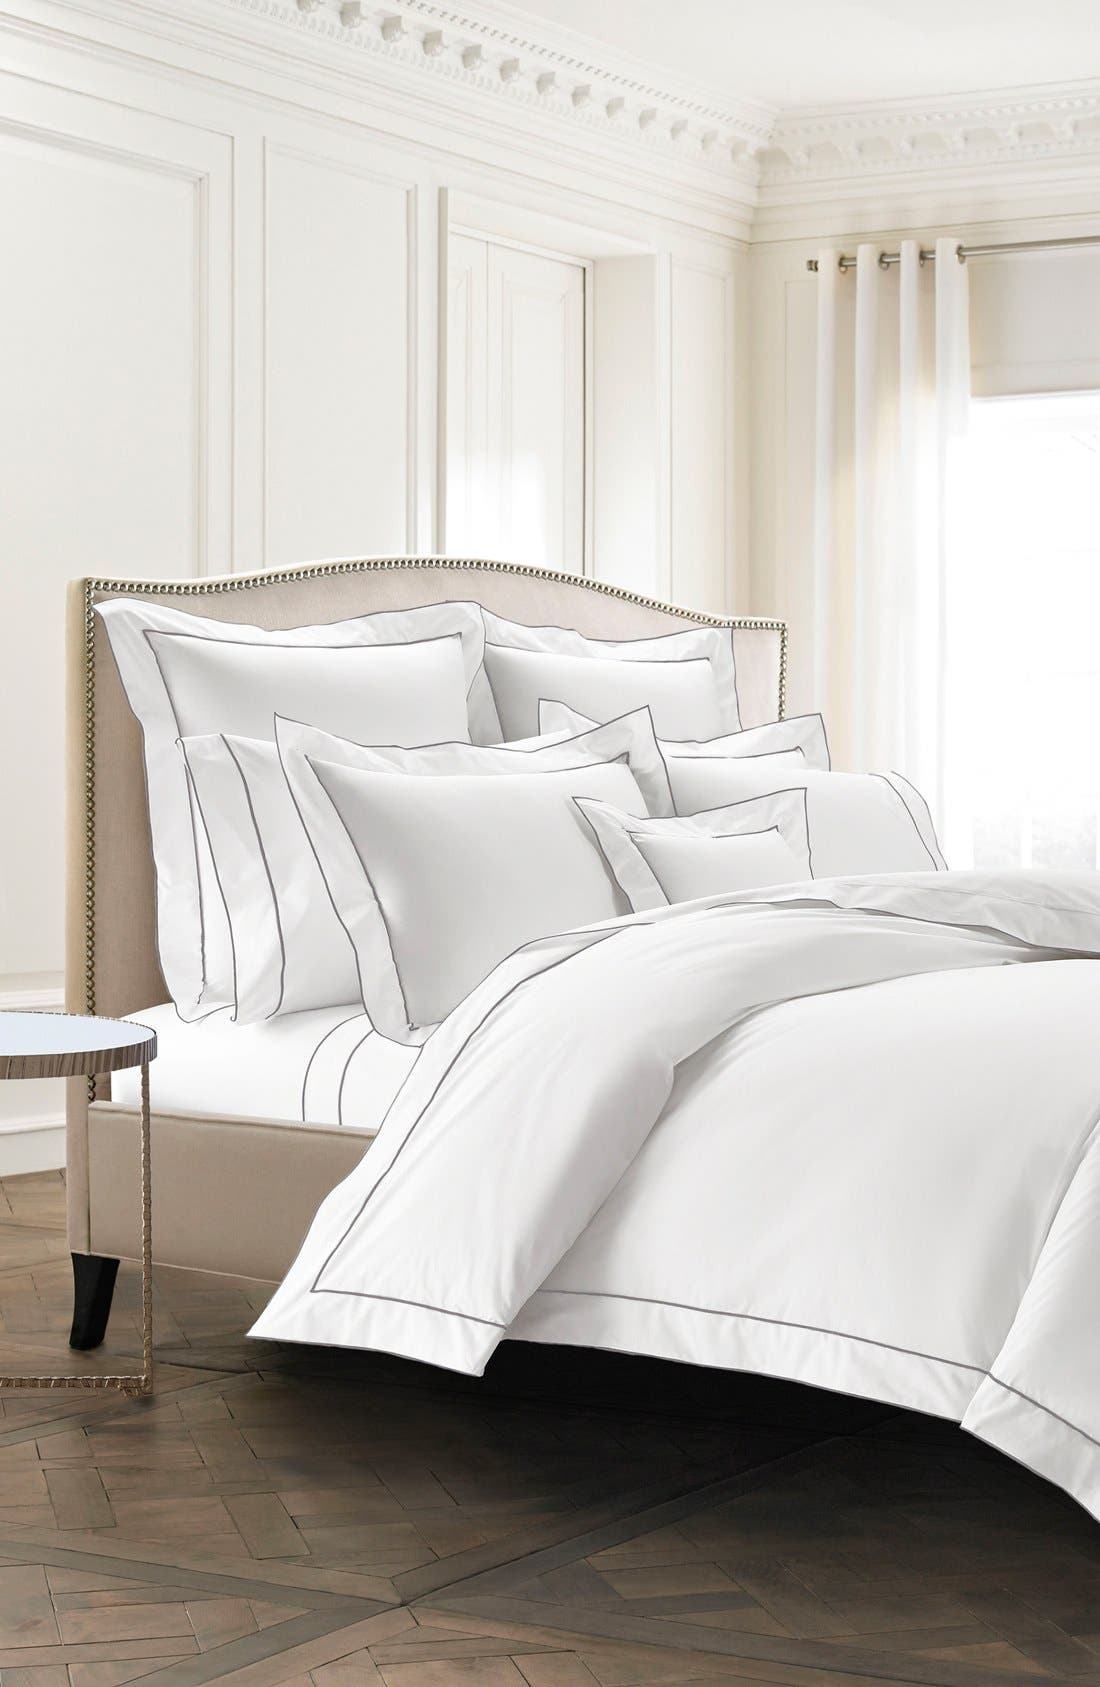 Sorrento 200 Thread Count Fitted Sheet,                             Alternate thumbnail 2, color,                             050